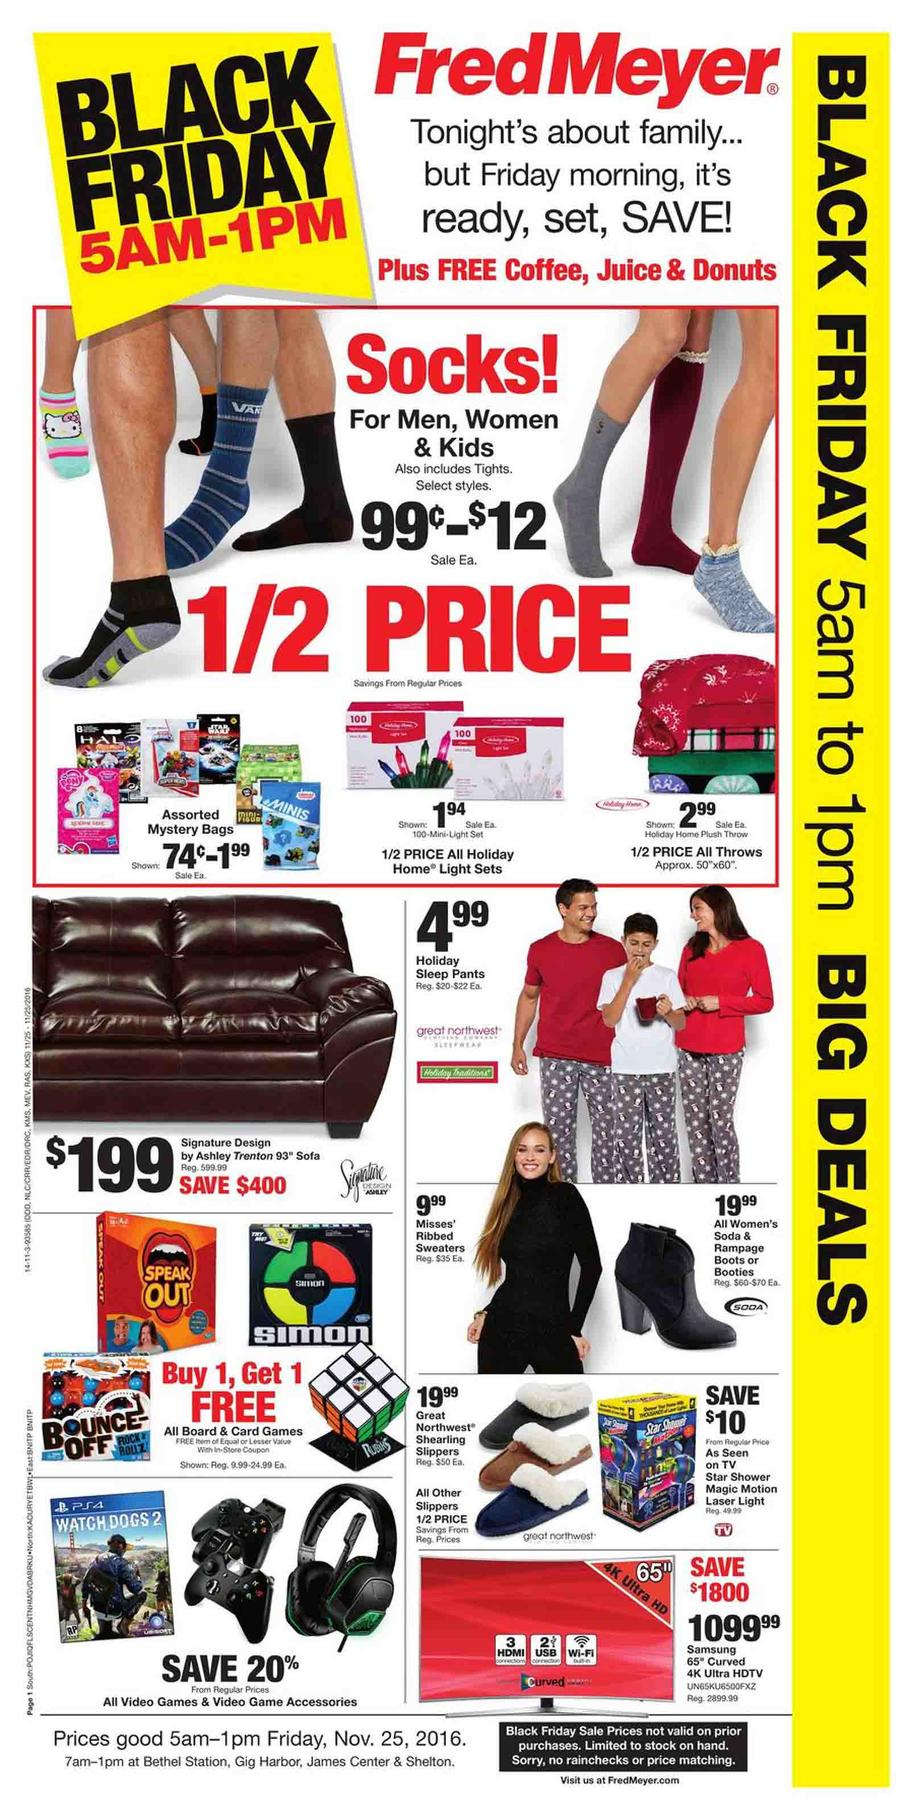 Camping world black friday deals